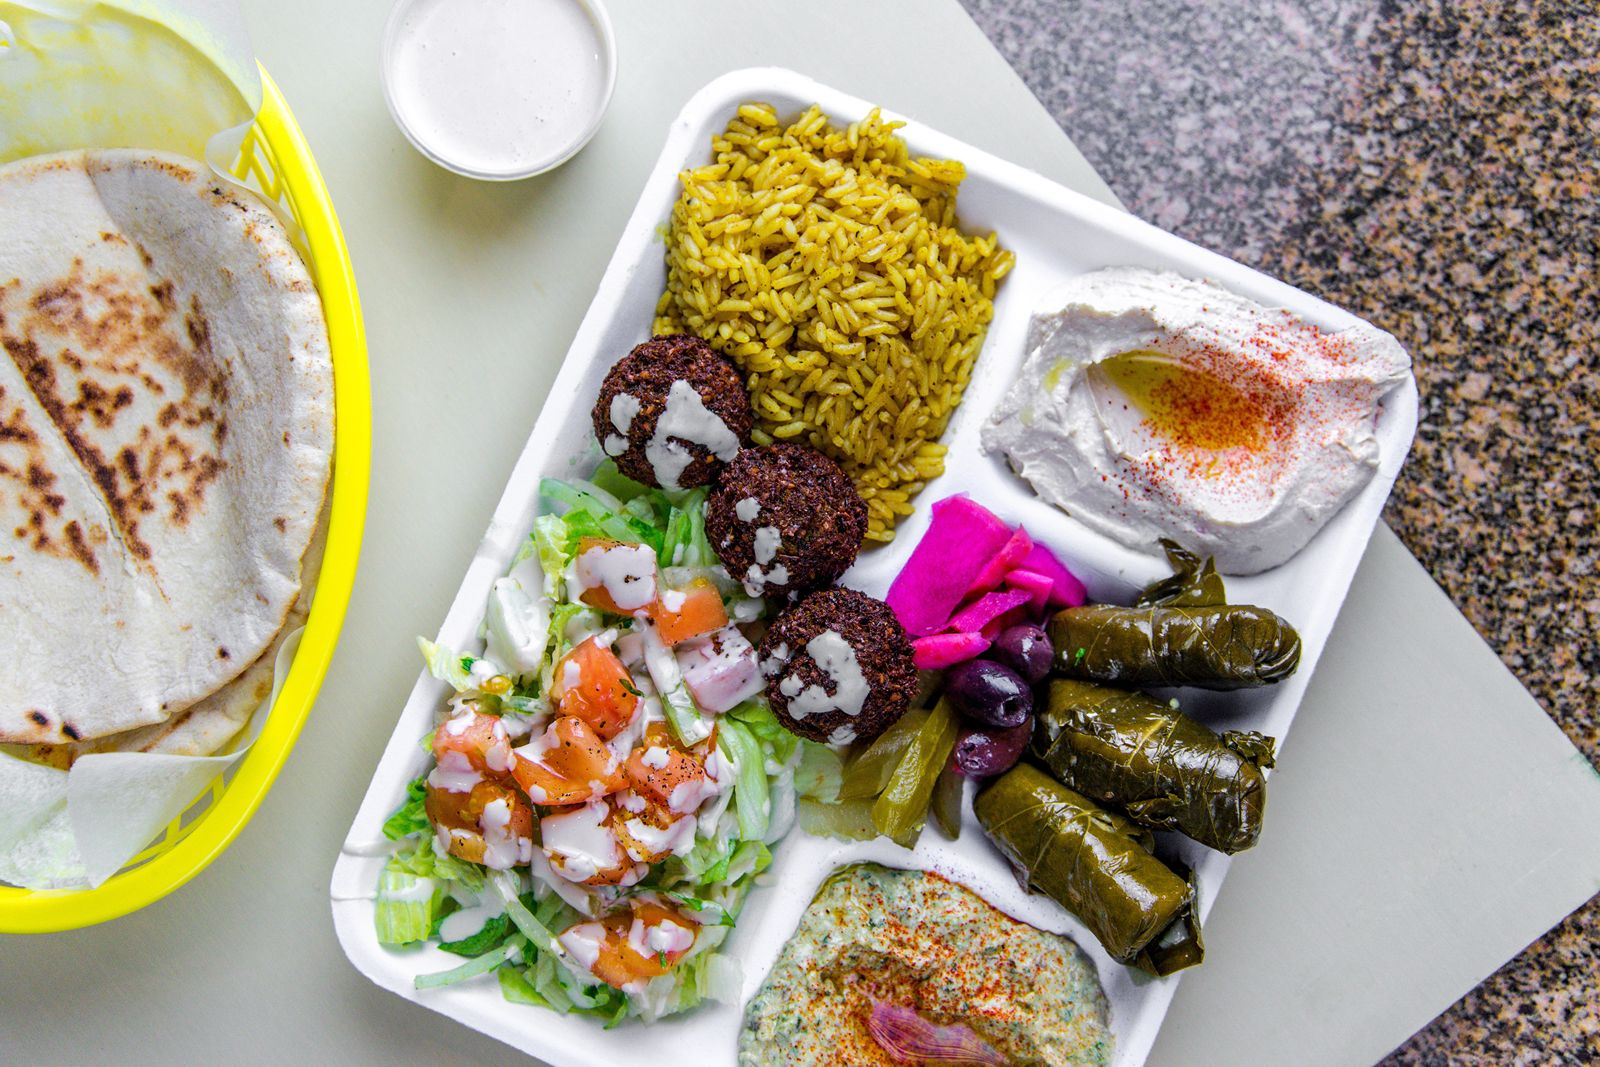 New York City's Acclaimed Mamoun's Falafel Will Open Shop in Chicago